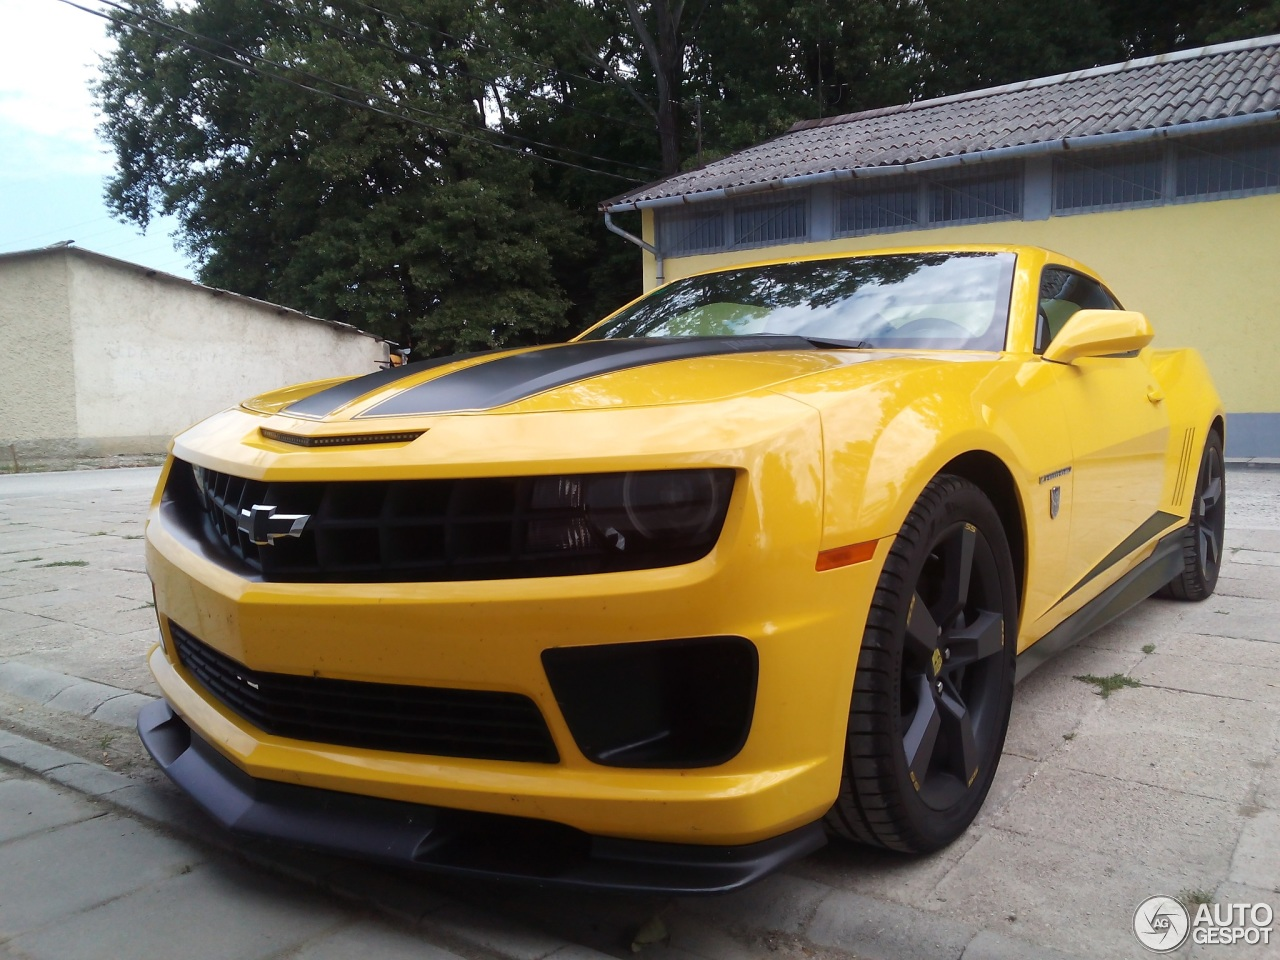 Chevrolet Camaro Ss Transformers Edition 31 July 2017